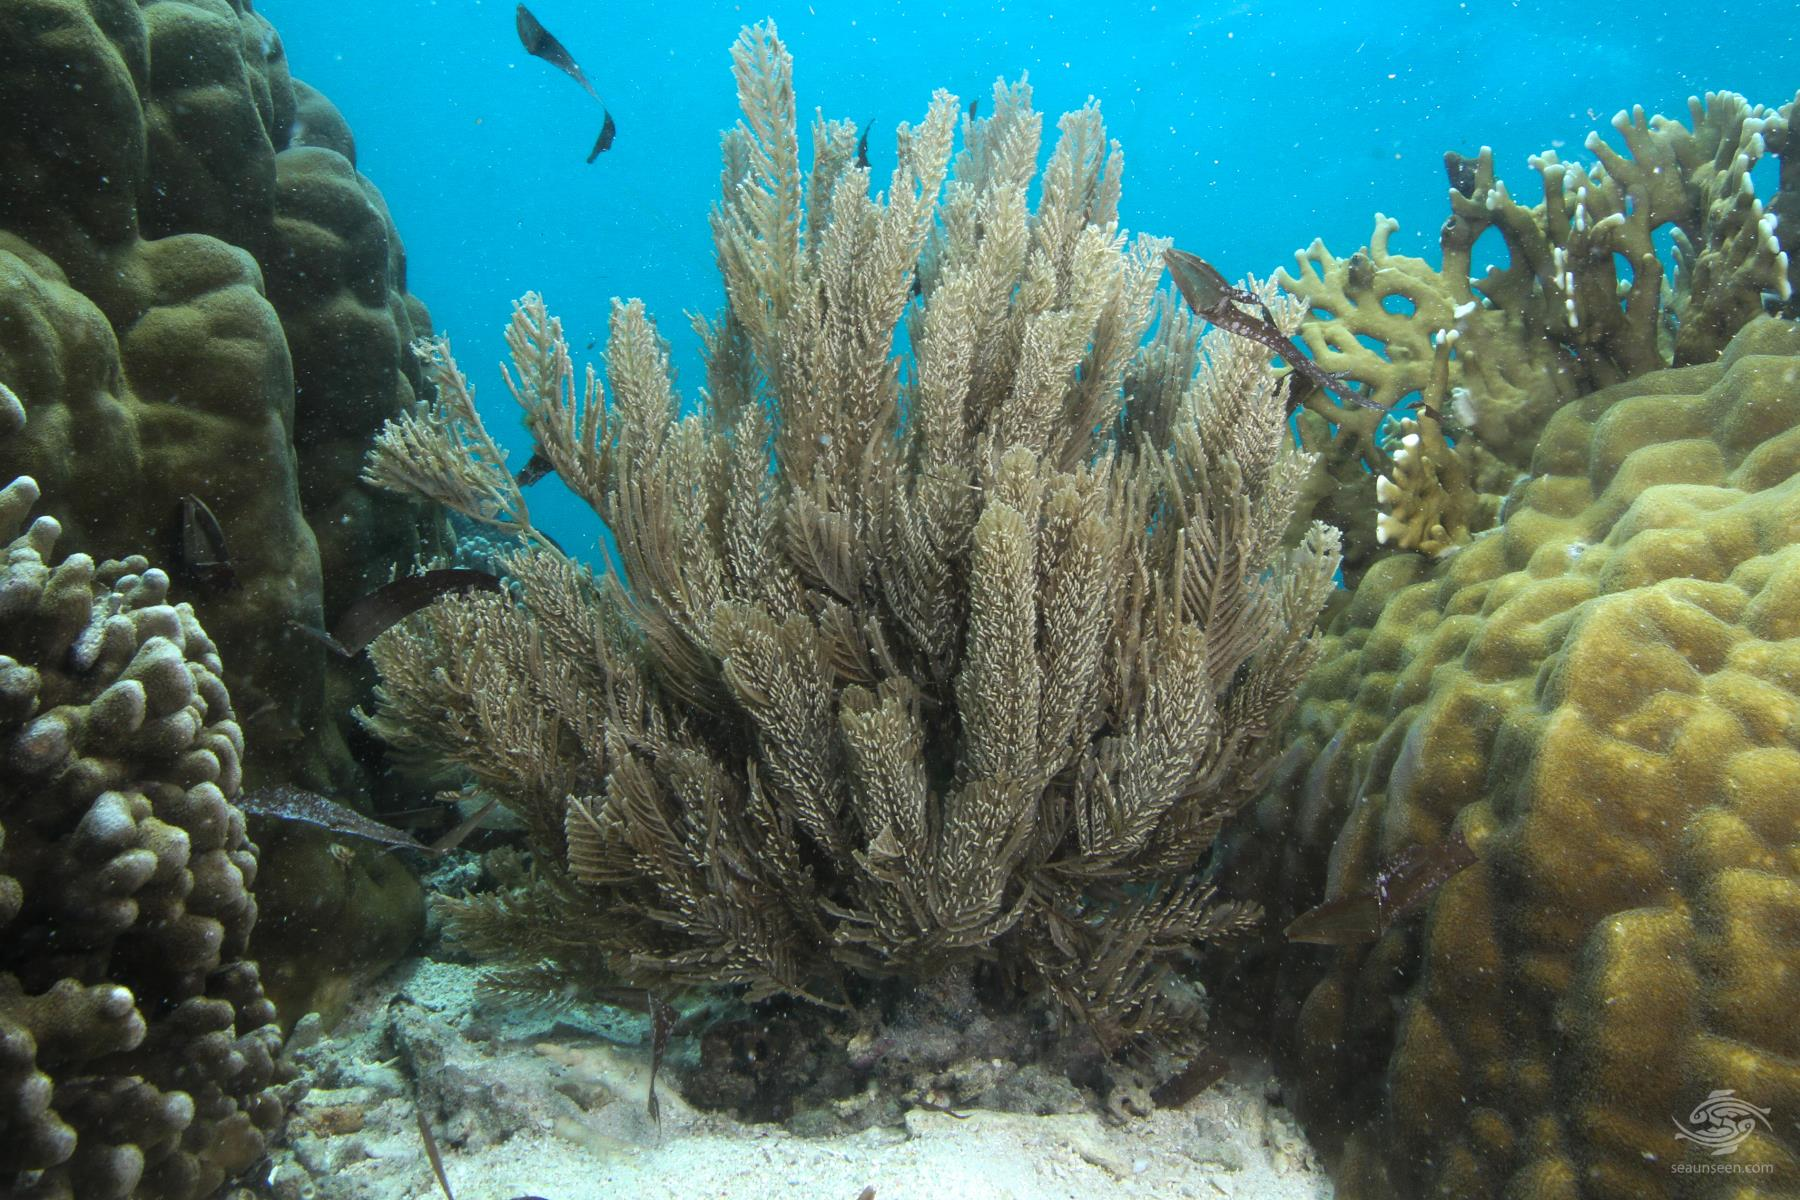 A large specimen of fireweed, Aglaophenia cupressina a stinging hydroid